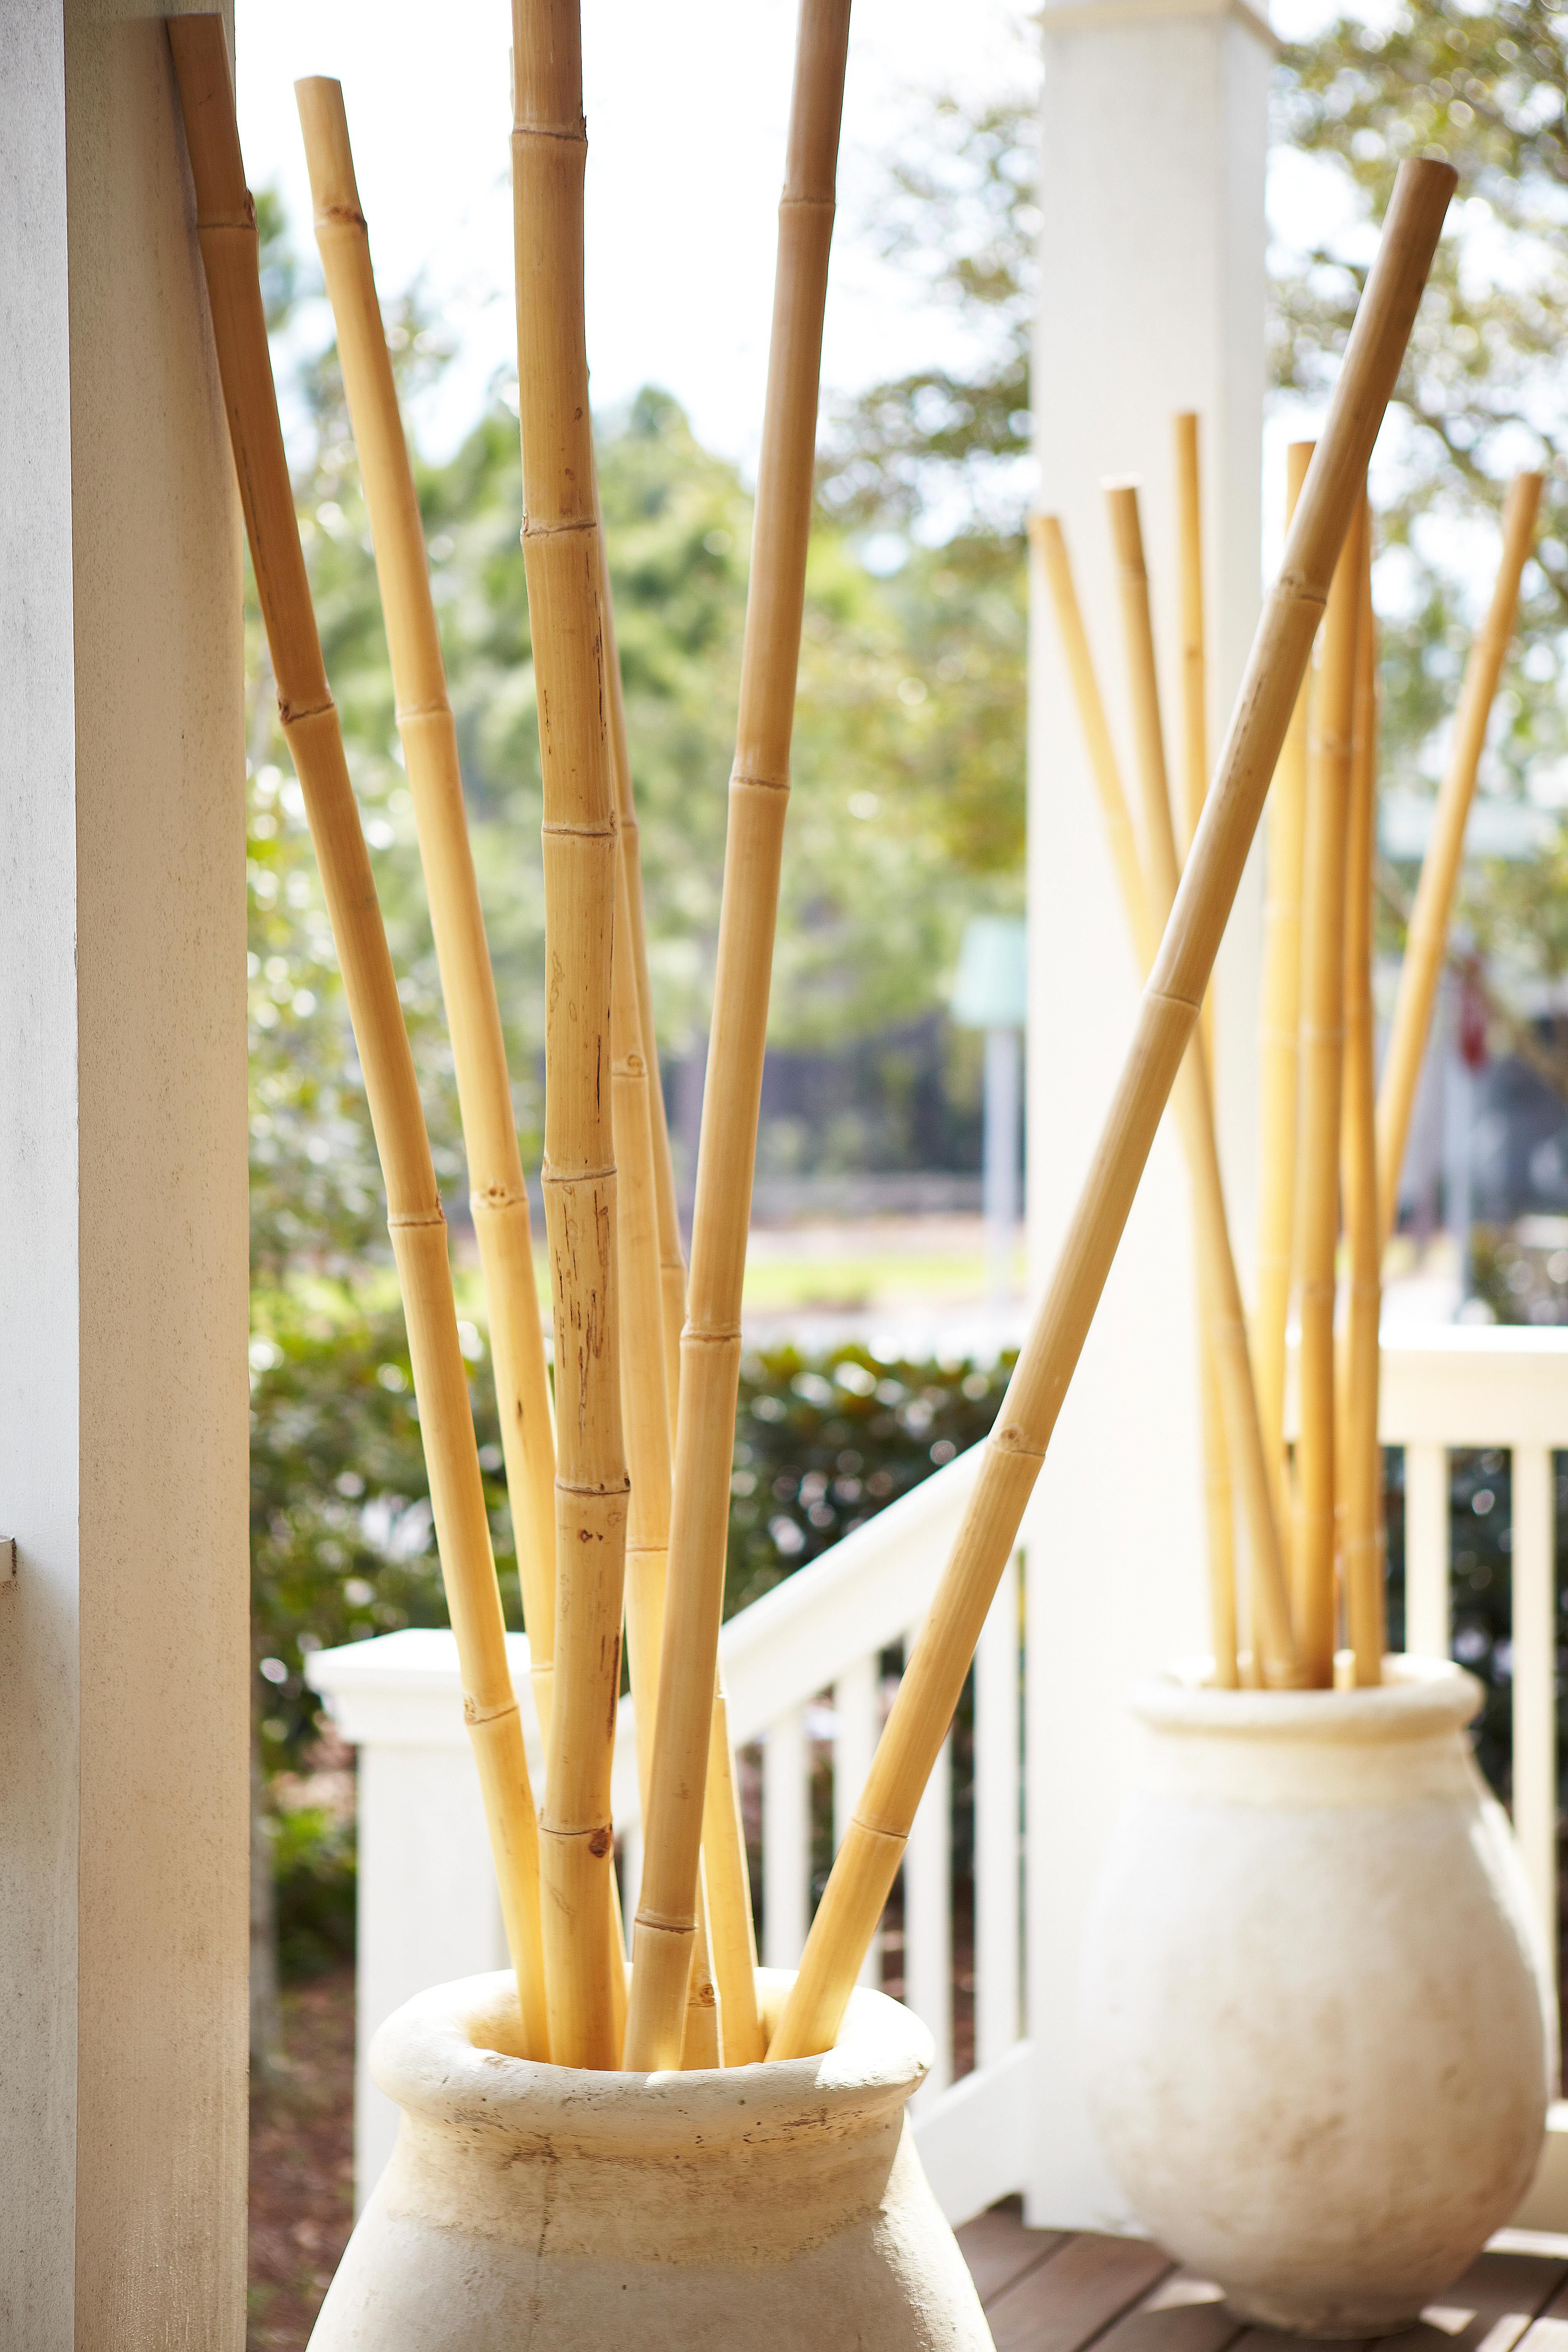 Bamboo Vase Decoration French Style Outdoor Pots With Bamboo Beach House